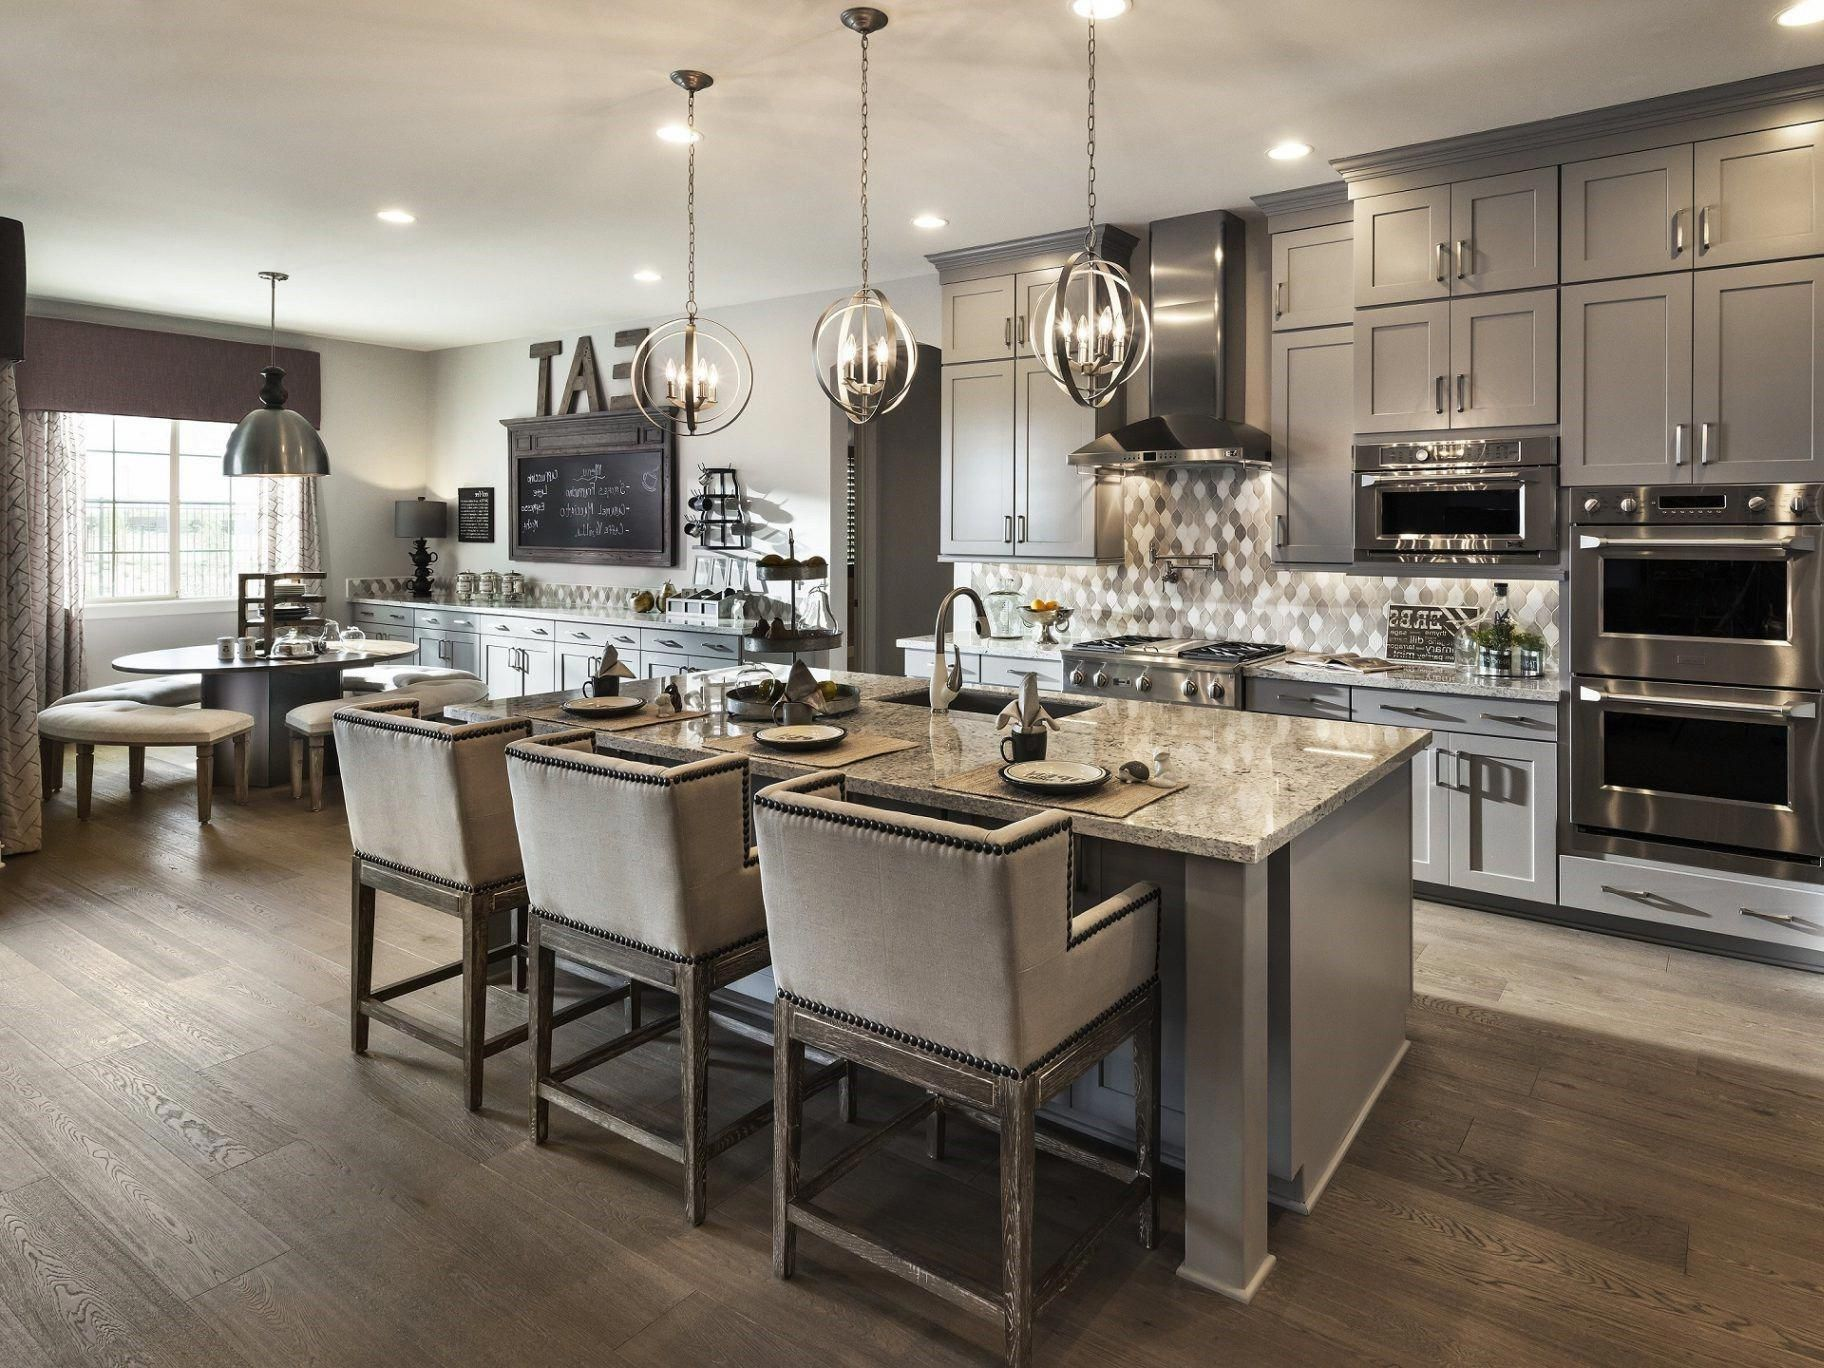 Kitchen Upgrades That You Can Actually Do Yourself And Diy Kitchen Cabinets Hamilton Ontario Overhead Paintingk Kitchen Design Kitchen Remodel Kitchen Trends